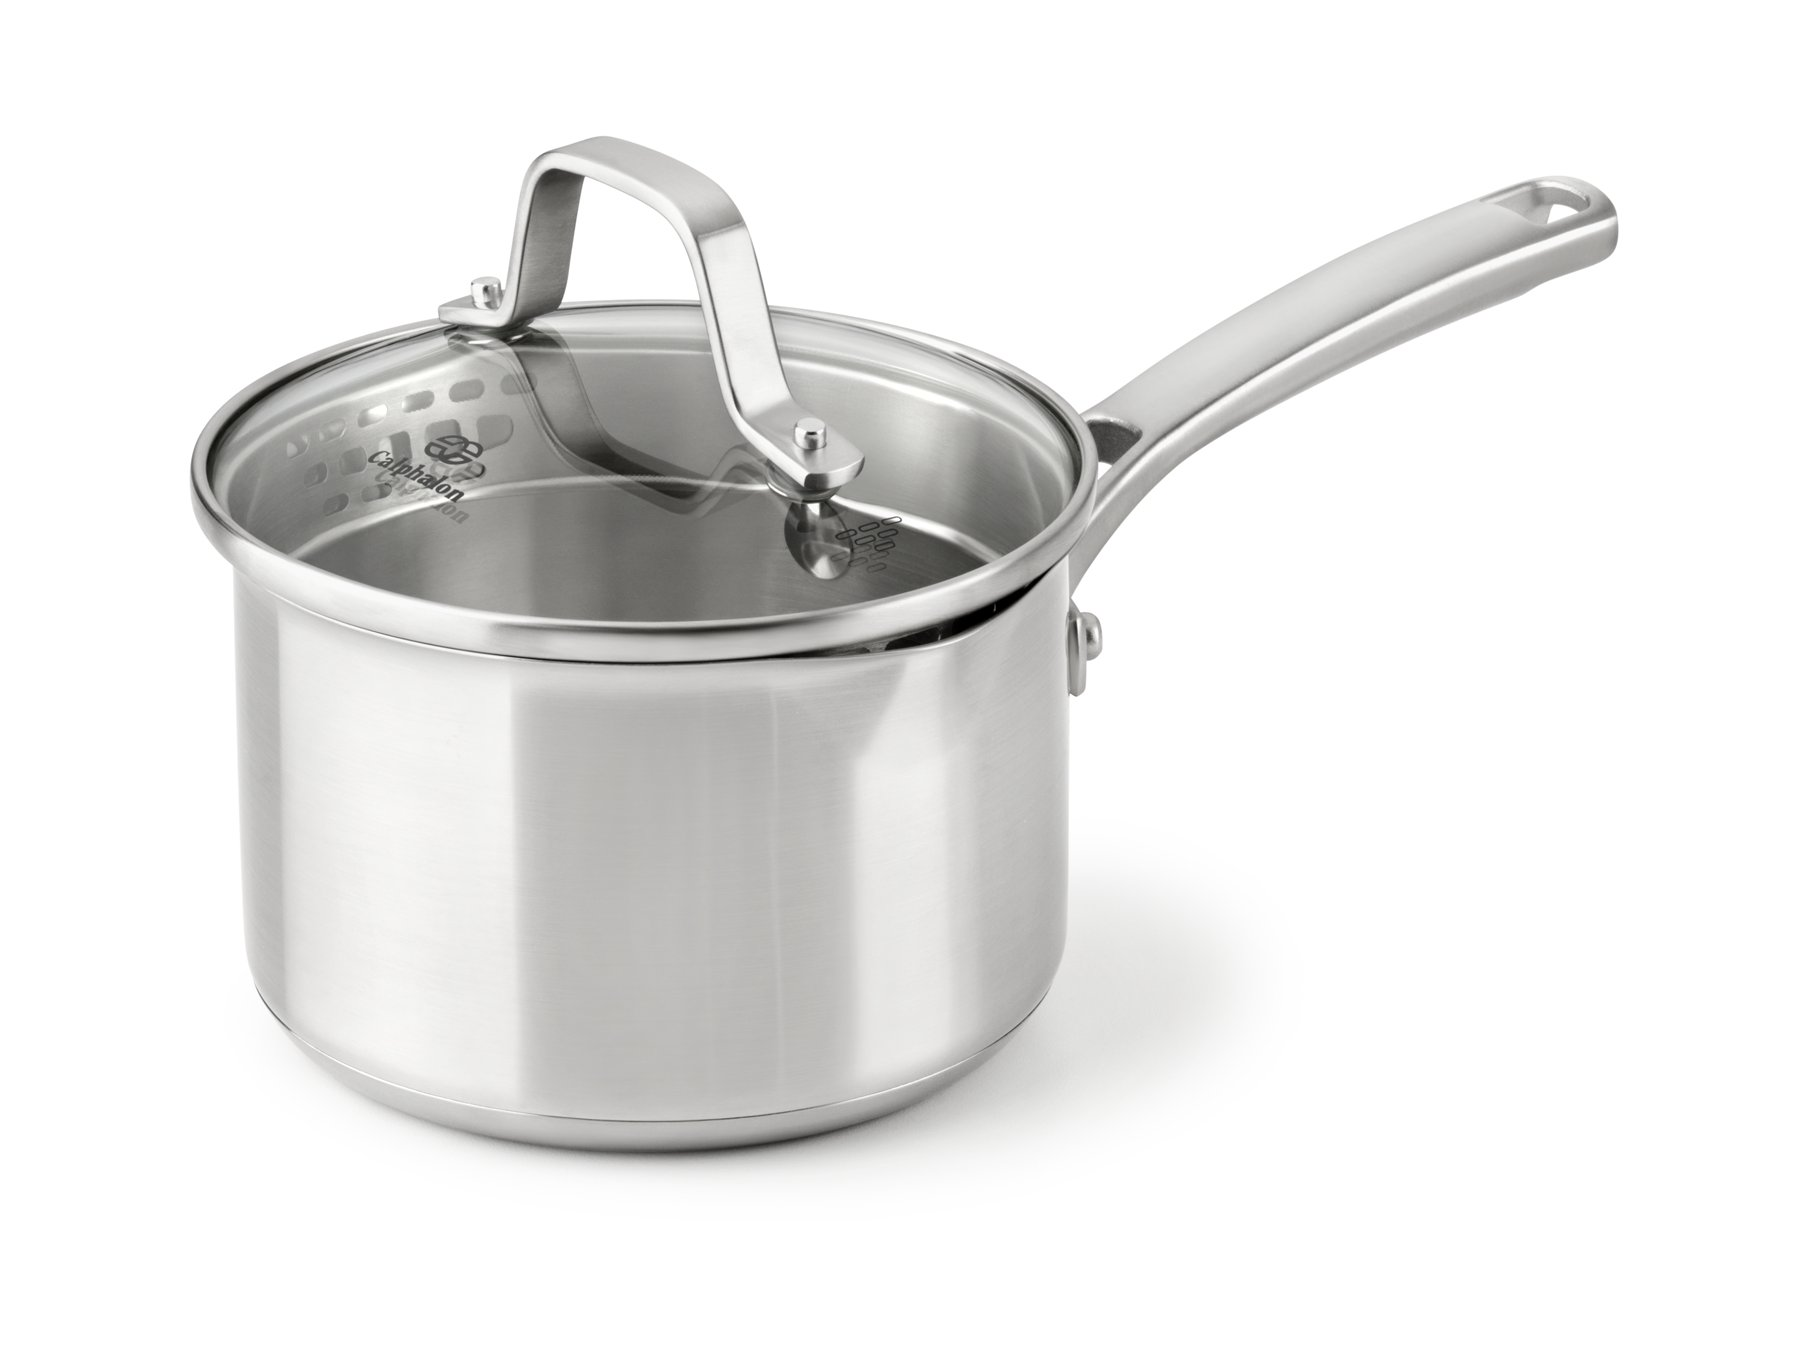 Calphalon Classic Stainless Steel 1.5-qt. Sauce Pan with Cover